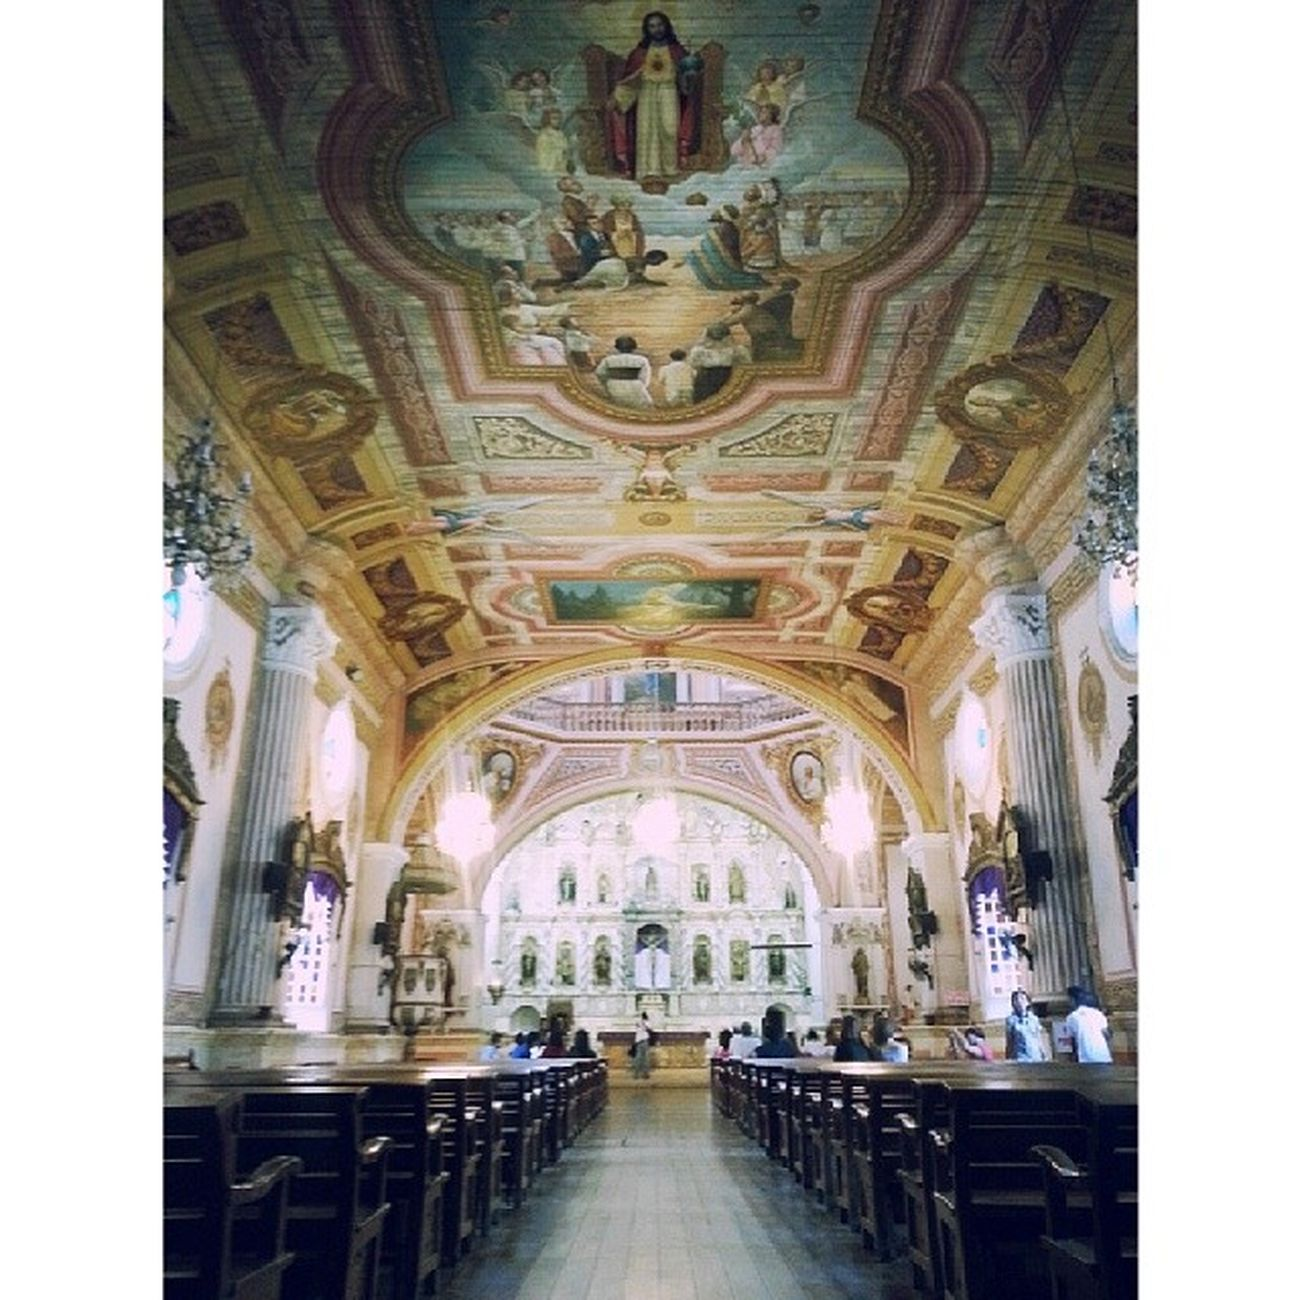 Santiago Mayor Parish Church. One of the most beautiful churches I've seen. And one of the few that still have wooden floors. Betis Pampanga Culturalandheritagetour Travel work